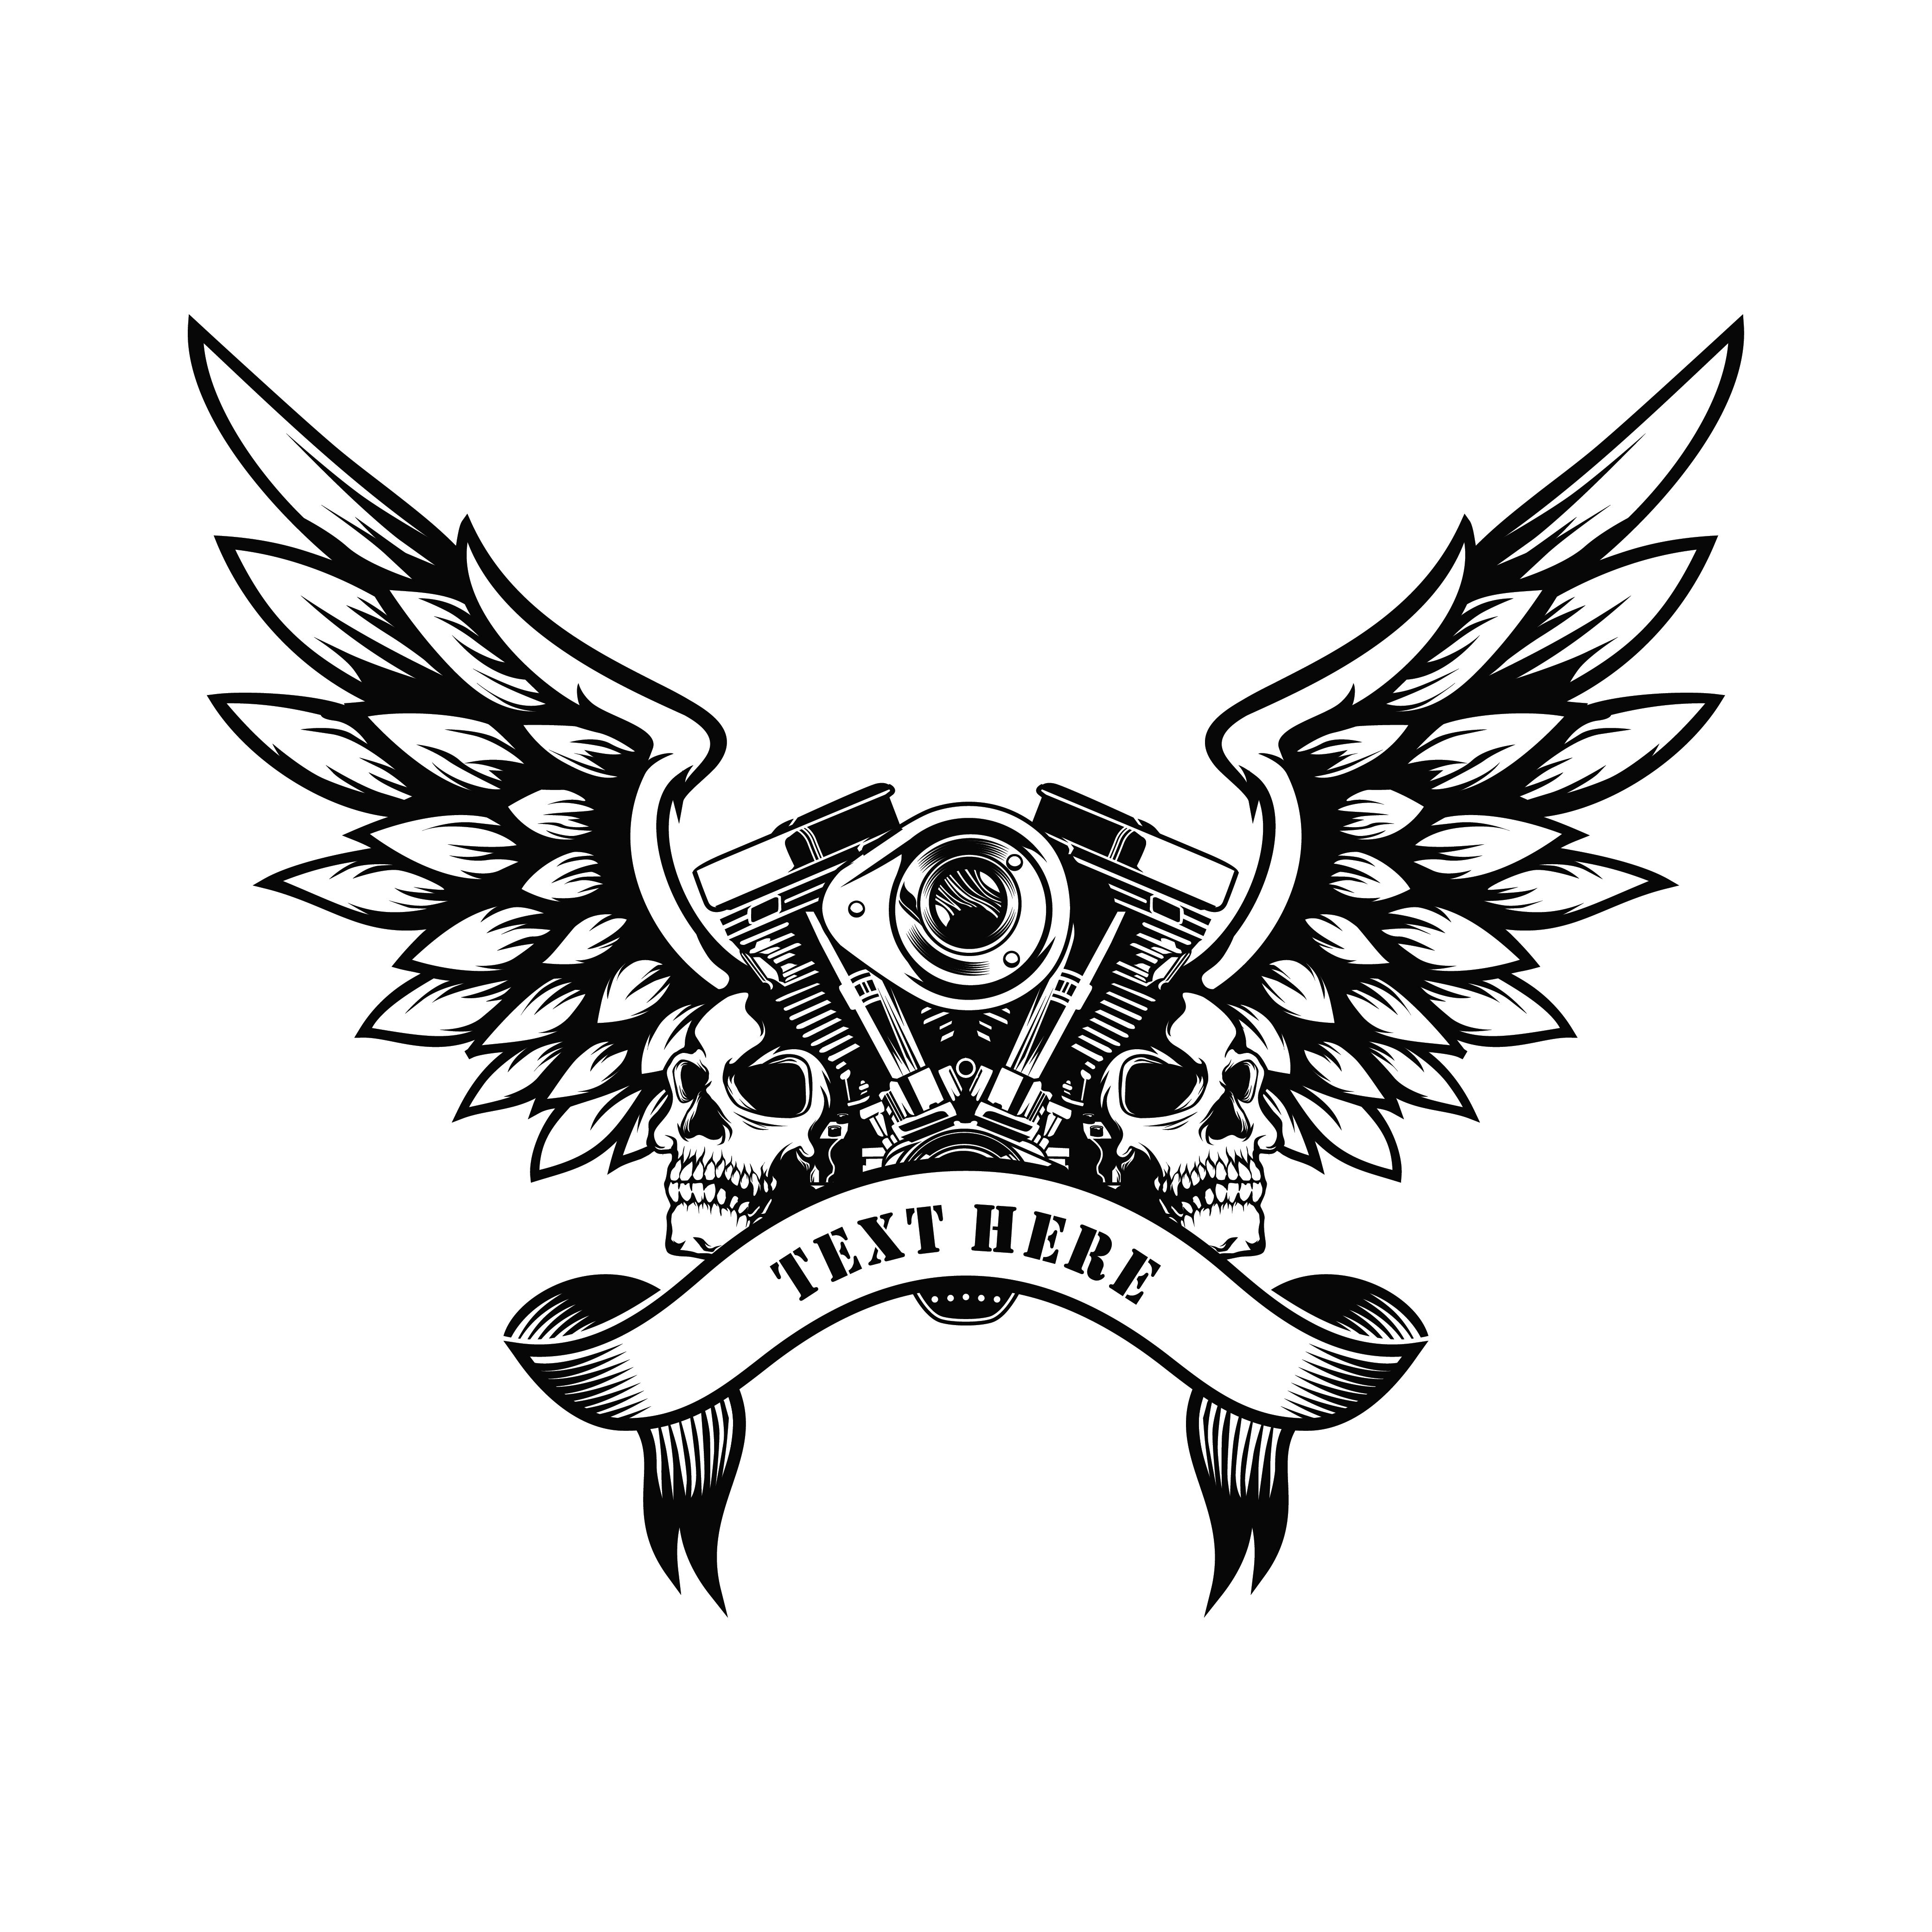 Motorcycle Club Design With Engine And Skull In